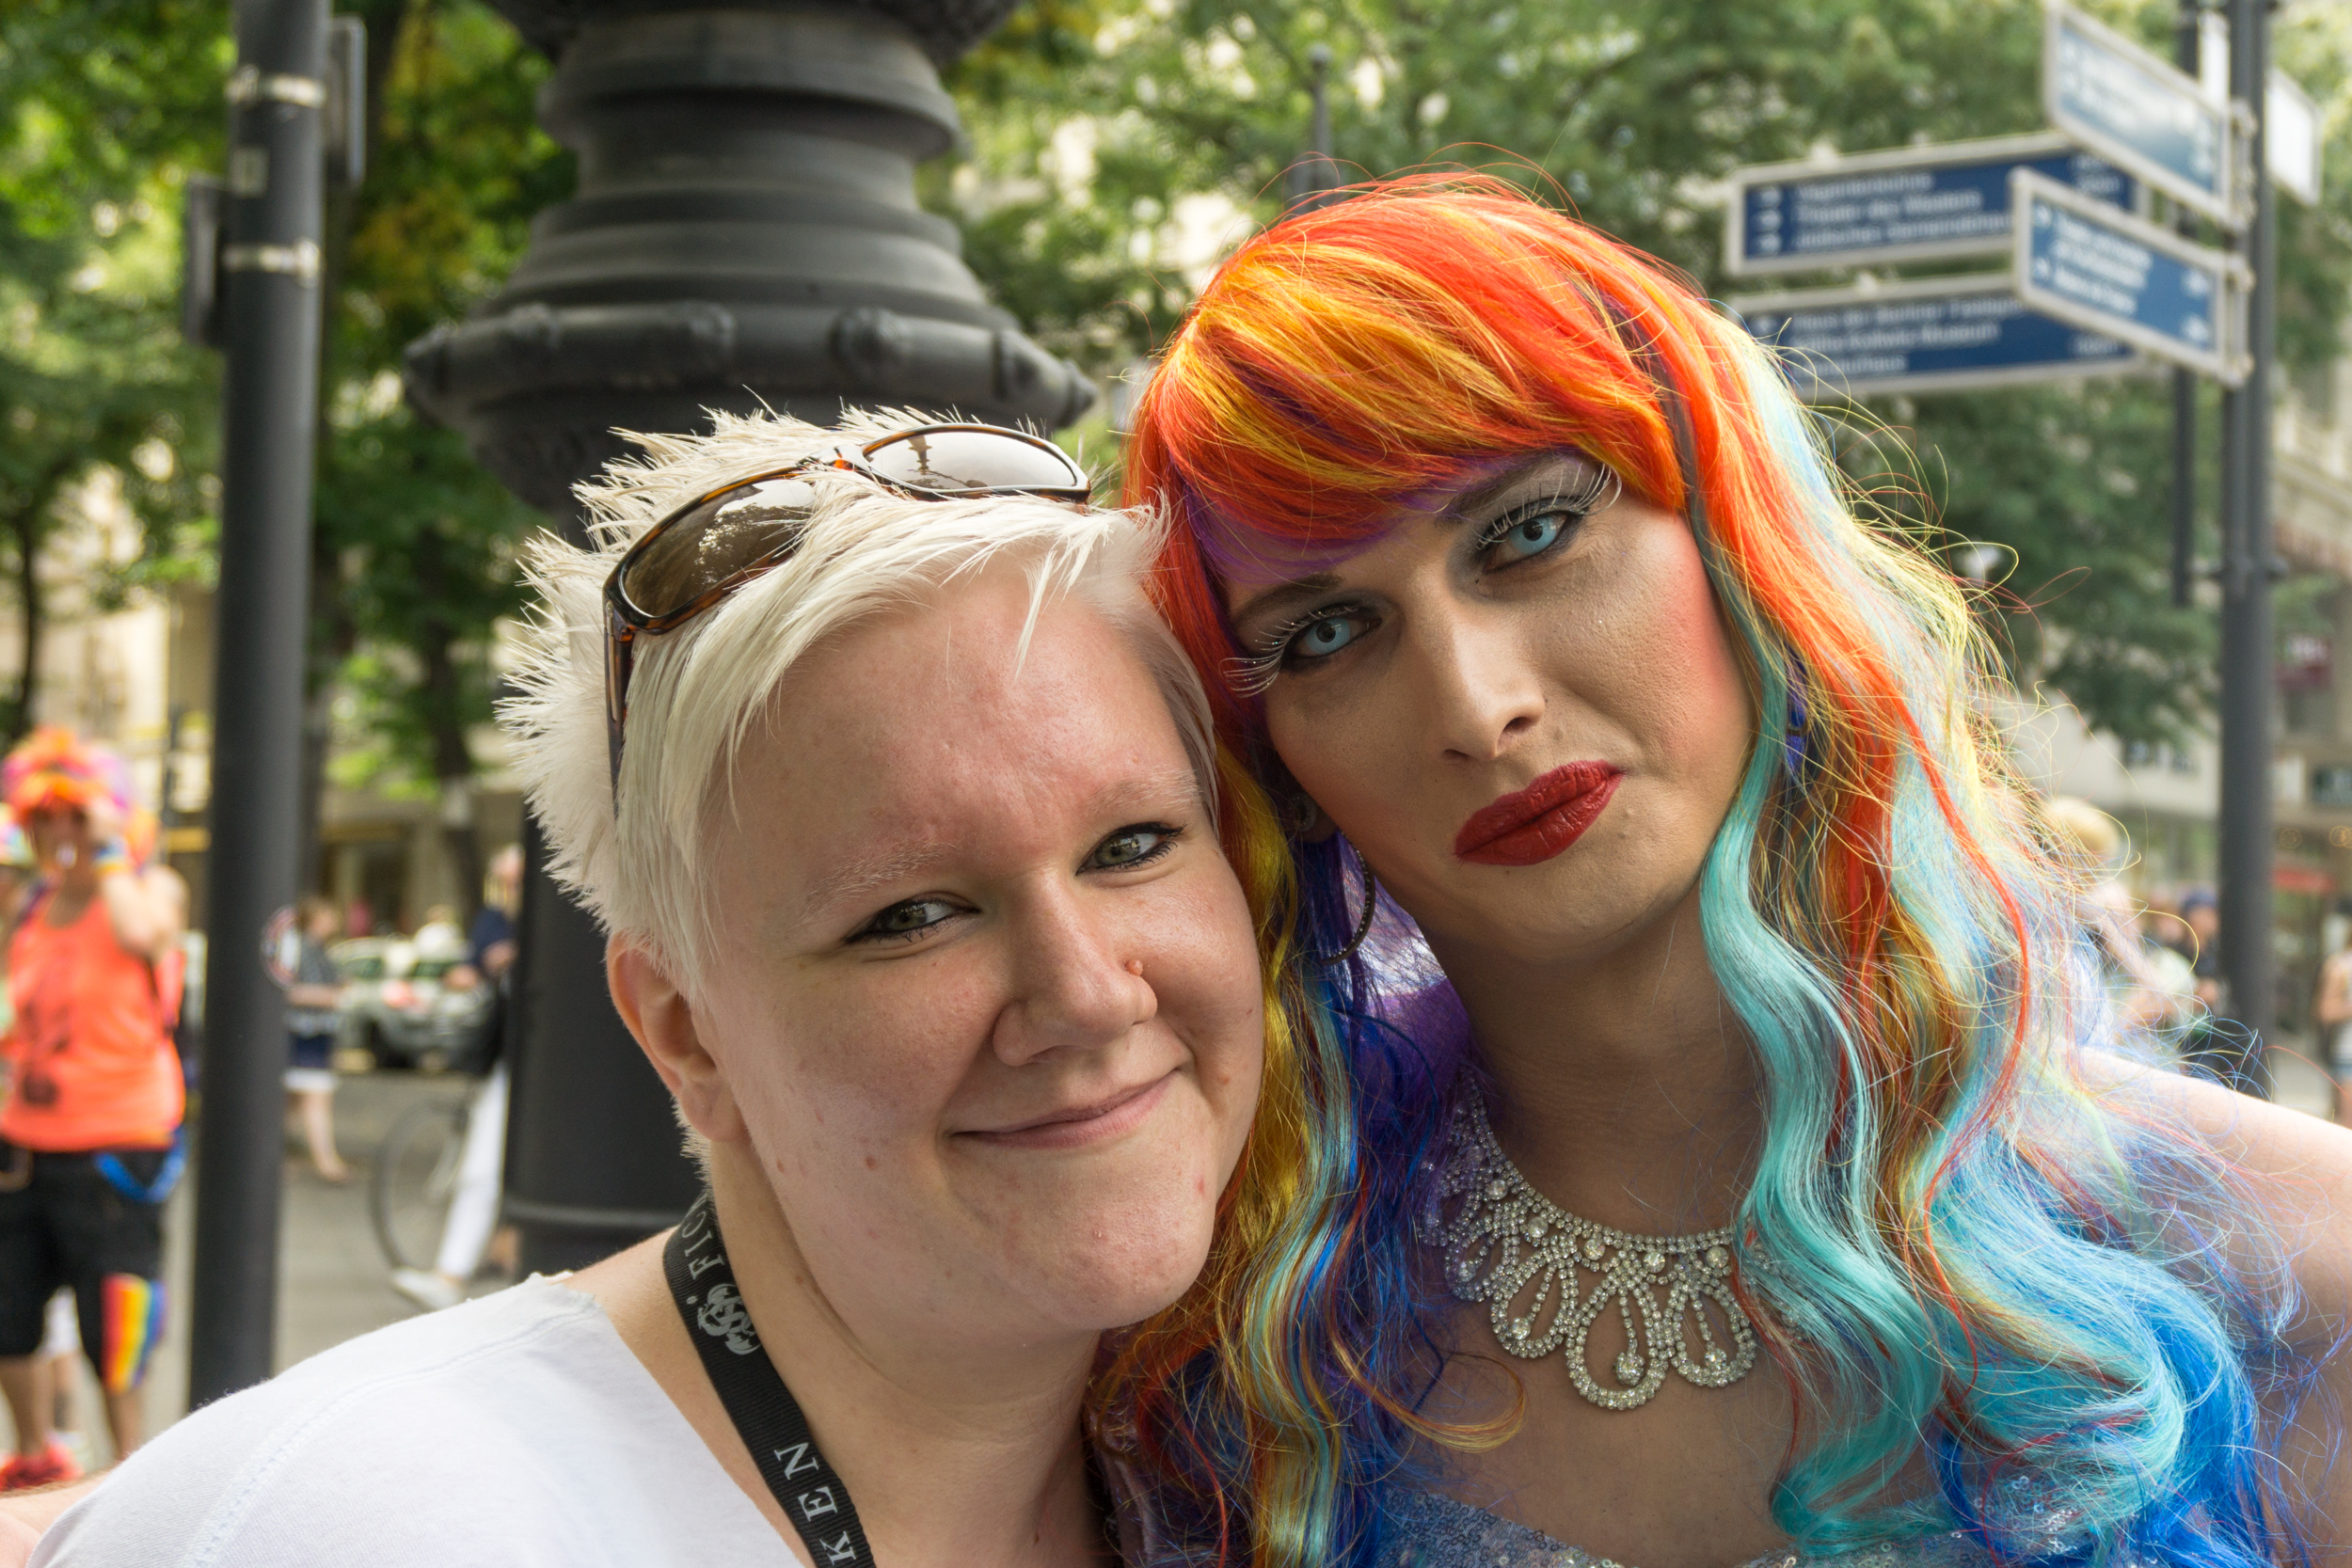 In_Pictures-Berlin_Pride-1